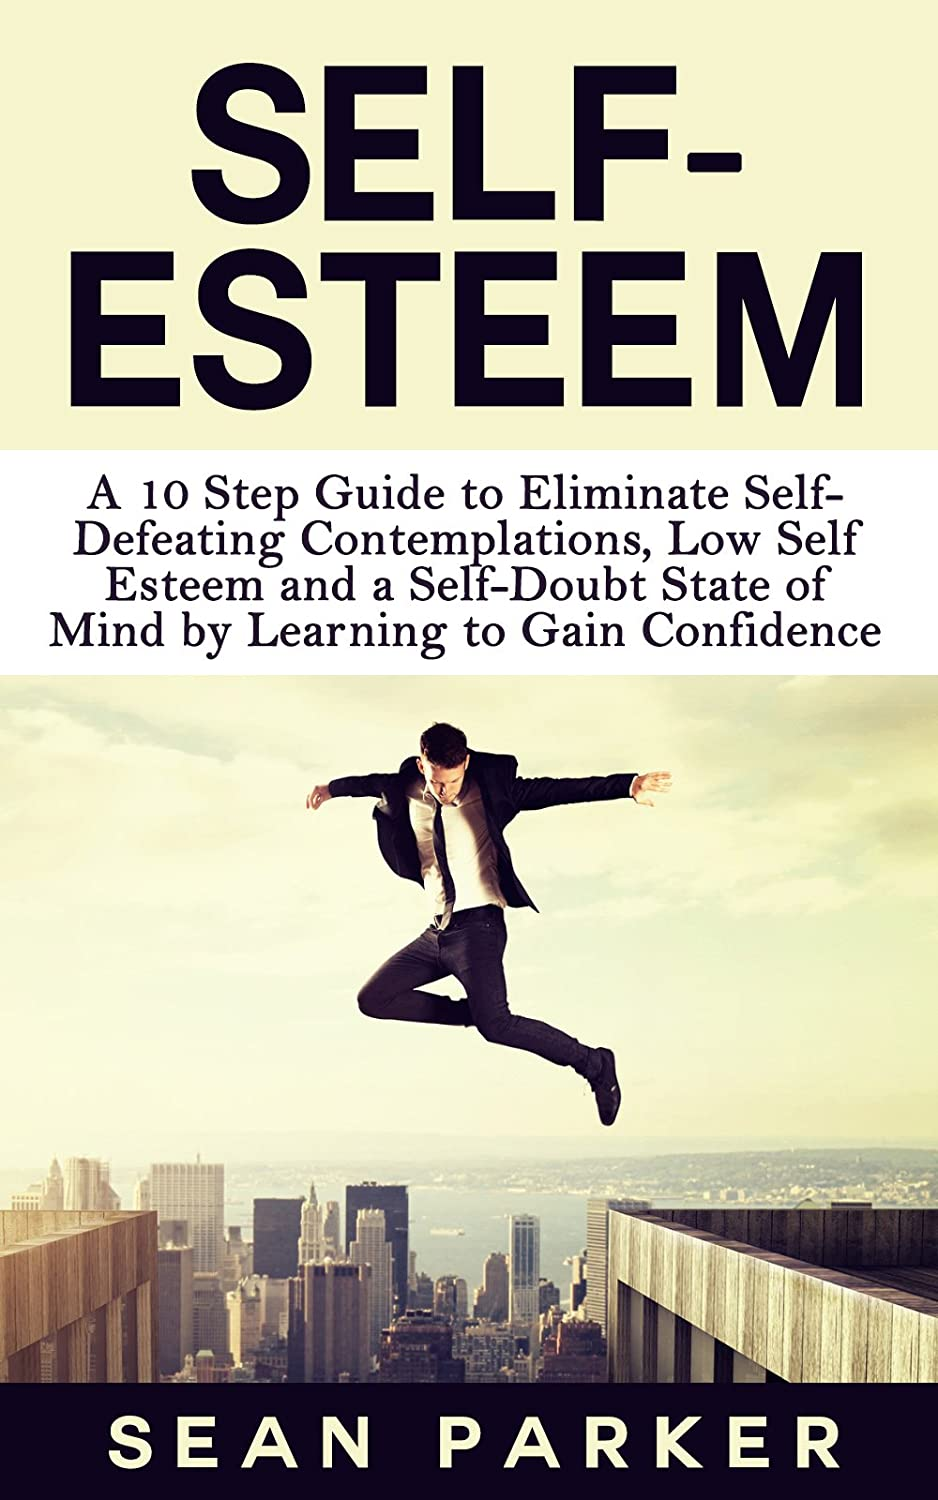 Self-Esteem: A 10 Step Guide to Eliminate Self- Defeating Contemplations, Low Self Esteem